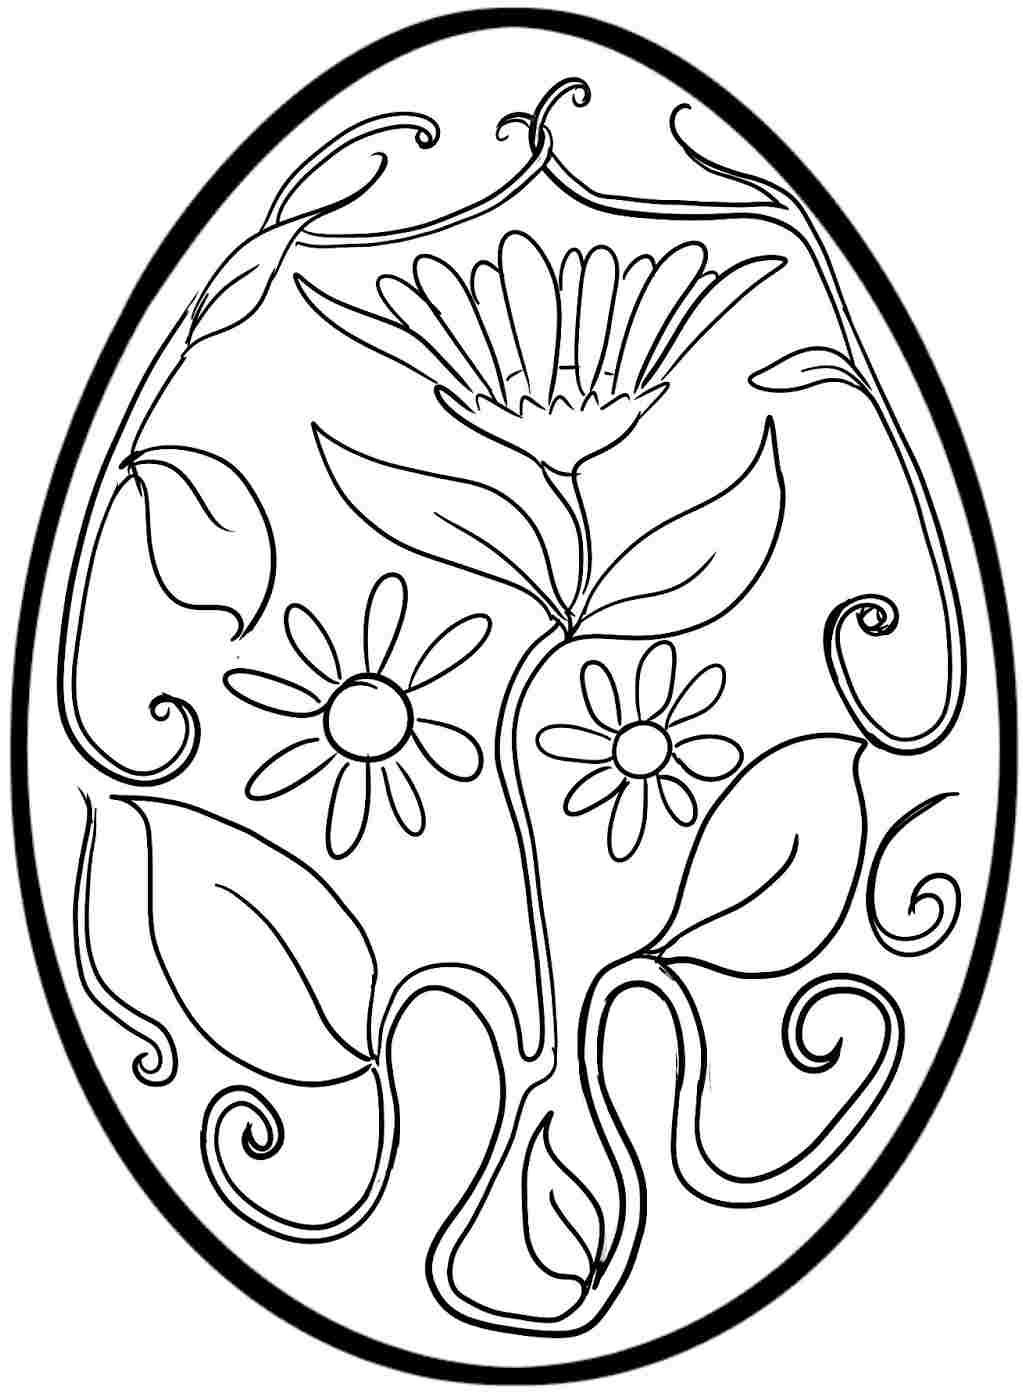 plain easter egg coloring pages free printable easter egg coloring pages with images easter pages coloring egg plain